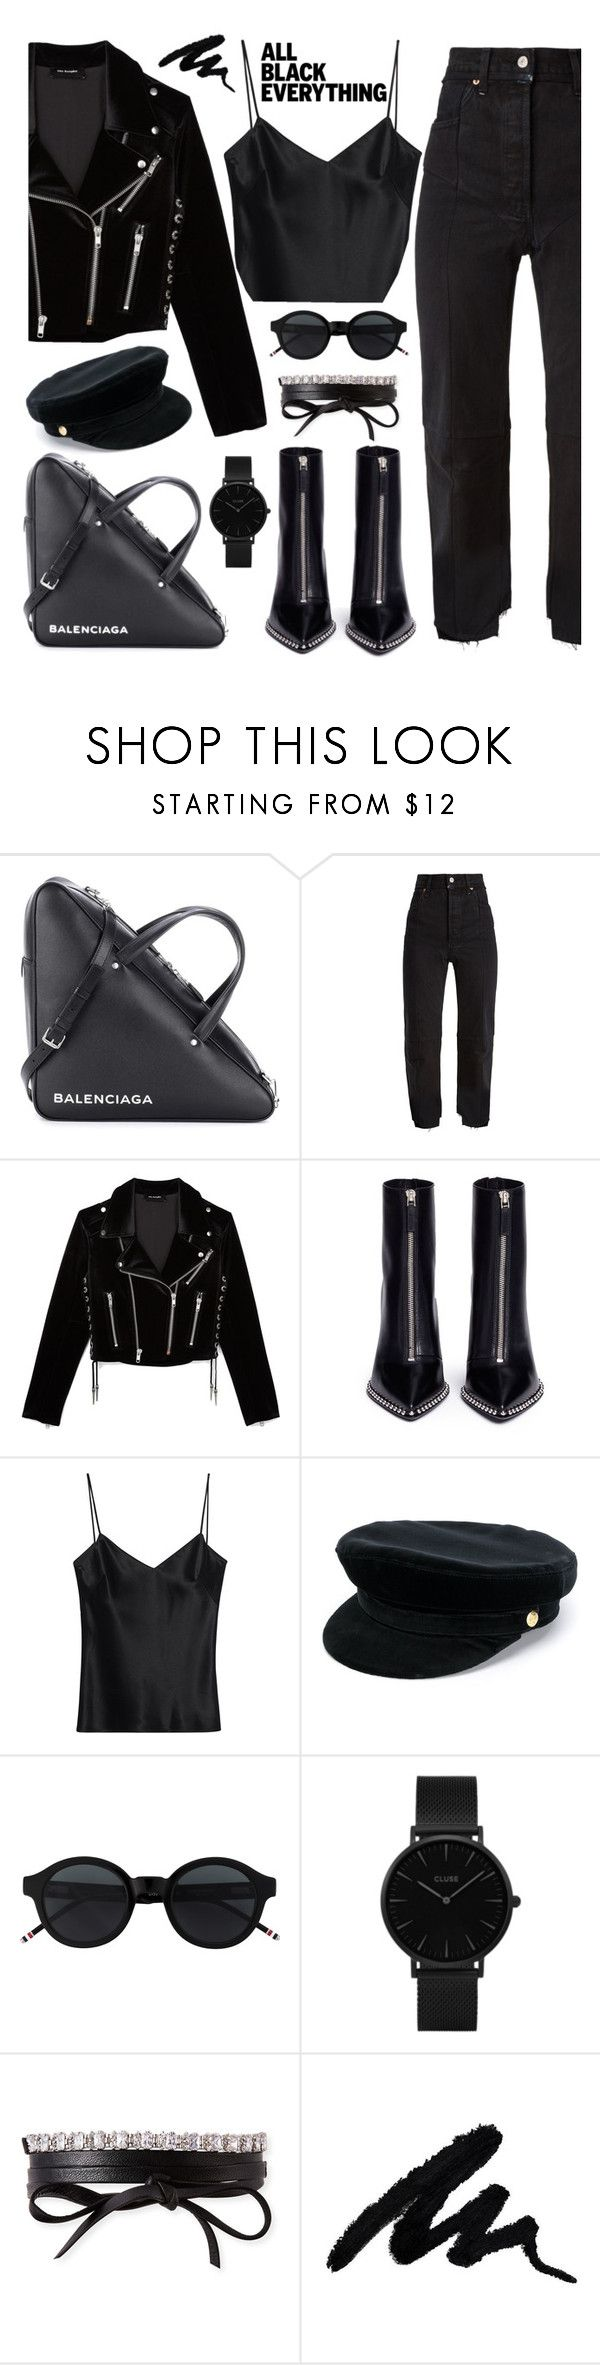 """Black is my happy color ☺"" by mairytaken ❤ liked on Polyvore featuring Balenciaga, Vetements, The Kooples, Alexander Wang, Galvan, Manokhi, CLUSE, Fallon and allblackoutfit"